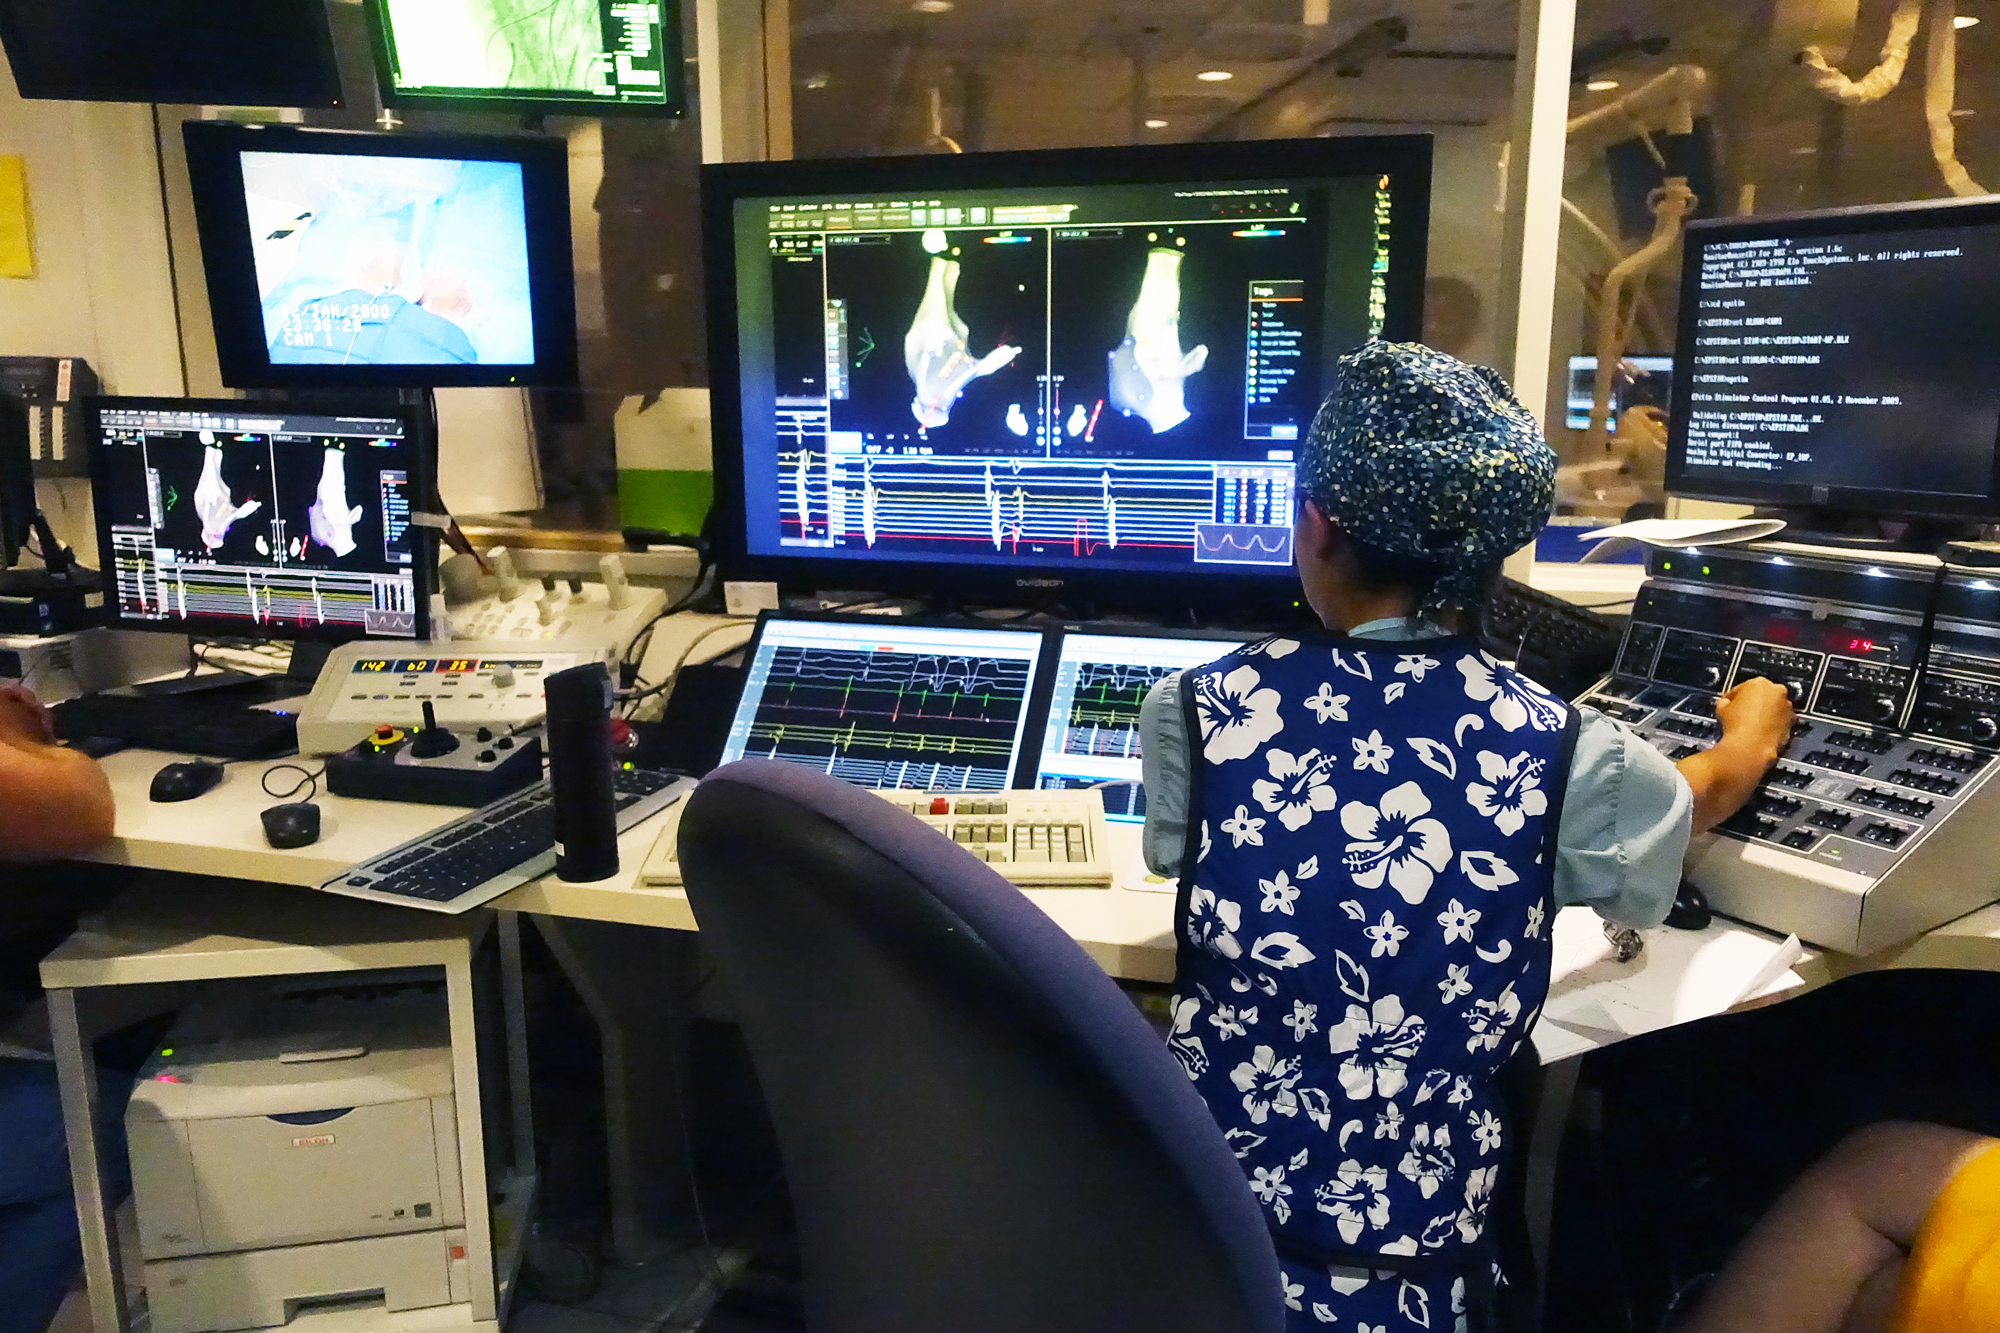 A physician at   Texas Children's Hospital   performs heart surgery on a 3-year-old patient,   using computers and a joystick   (!), August 2014.